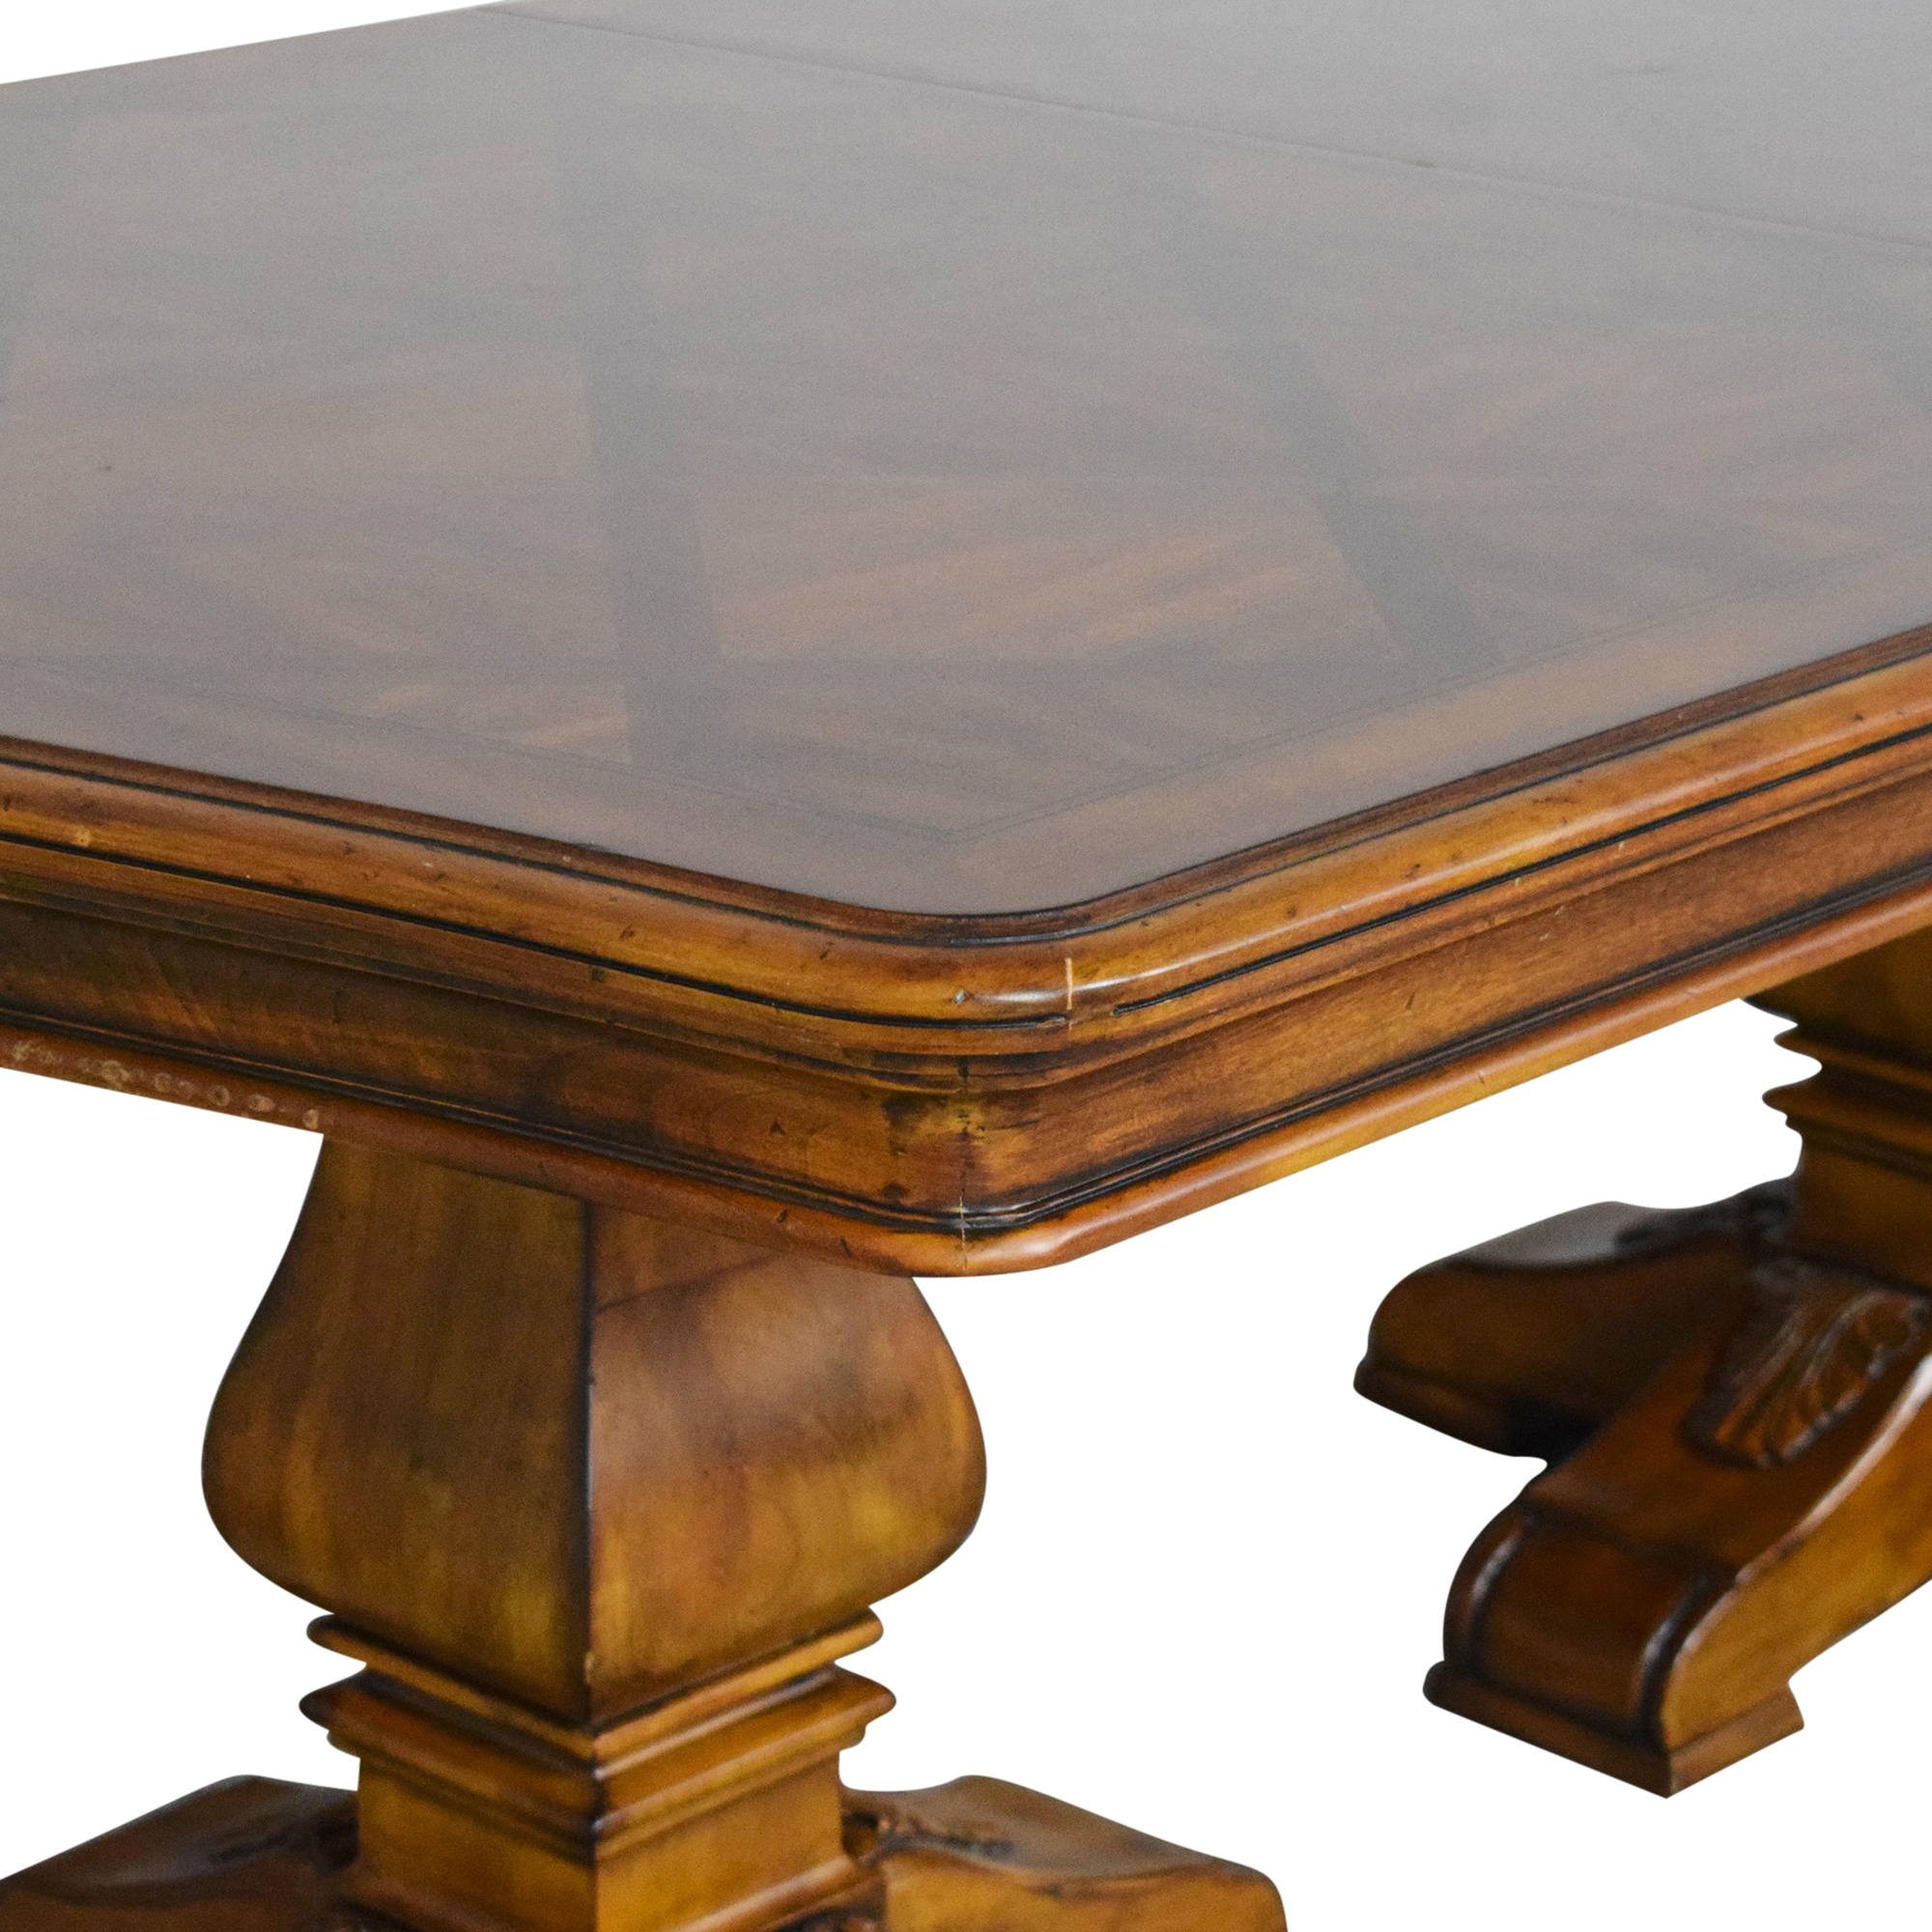 Ethan Allen Ethan Allen Tuscany Collection Extendable Dining Table